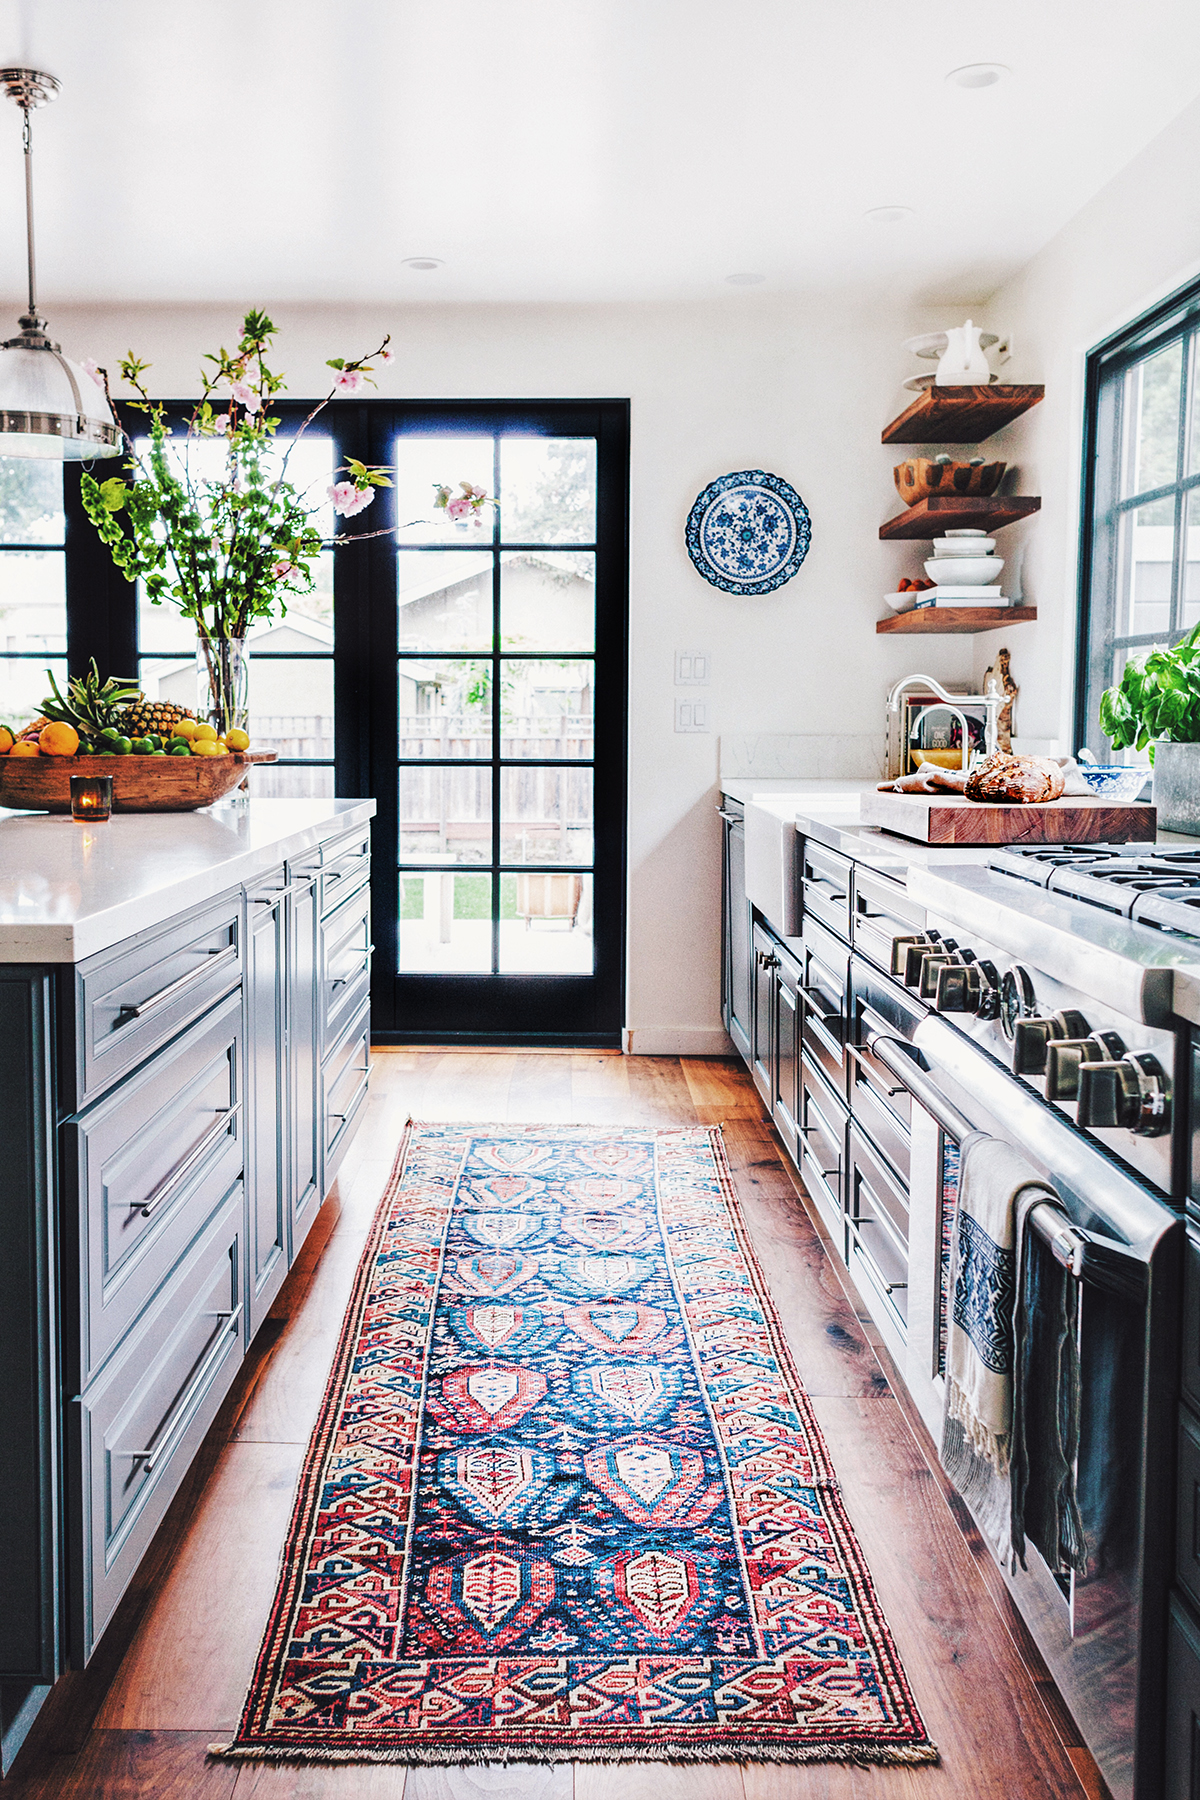 Finding The Right Antique Rug   Honestly WTF - Pinterest Picks - Bohemian Rugs